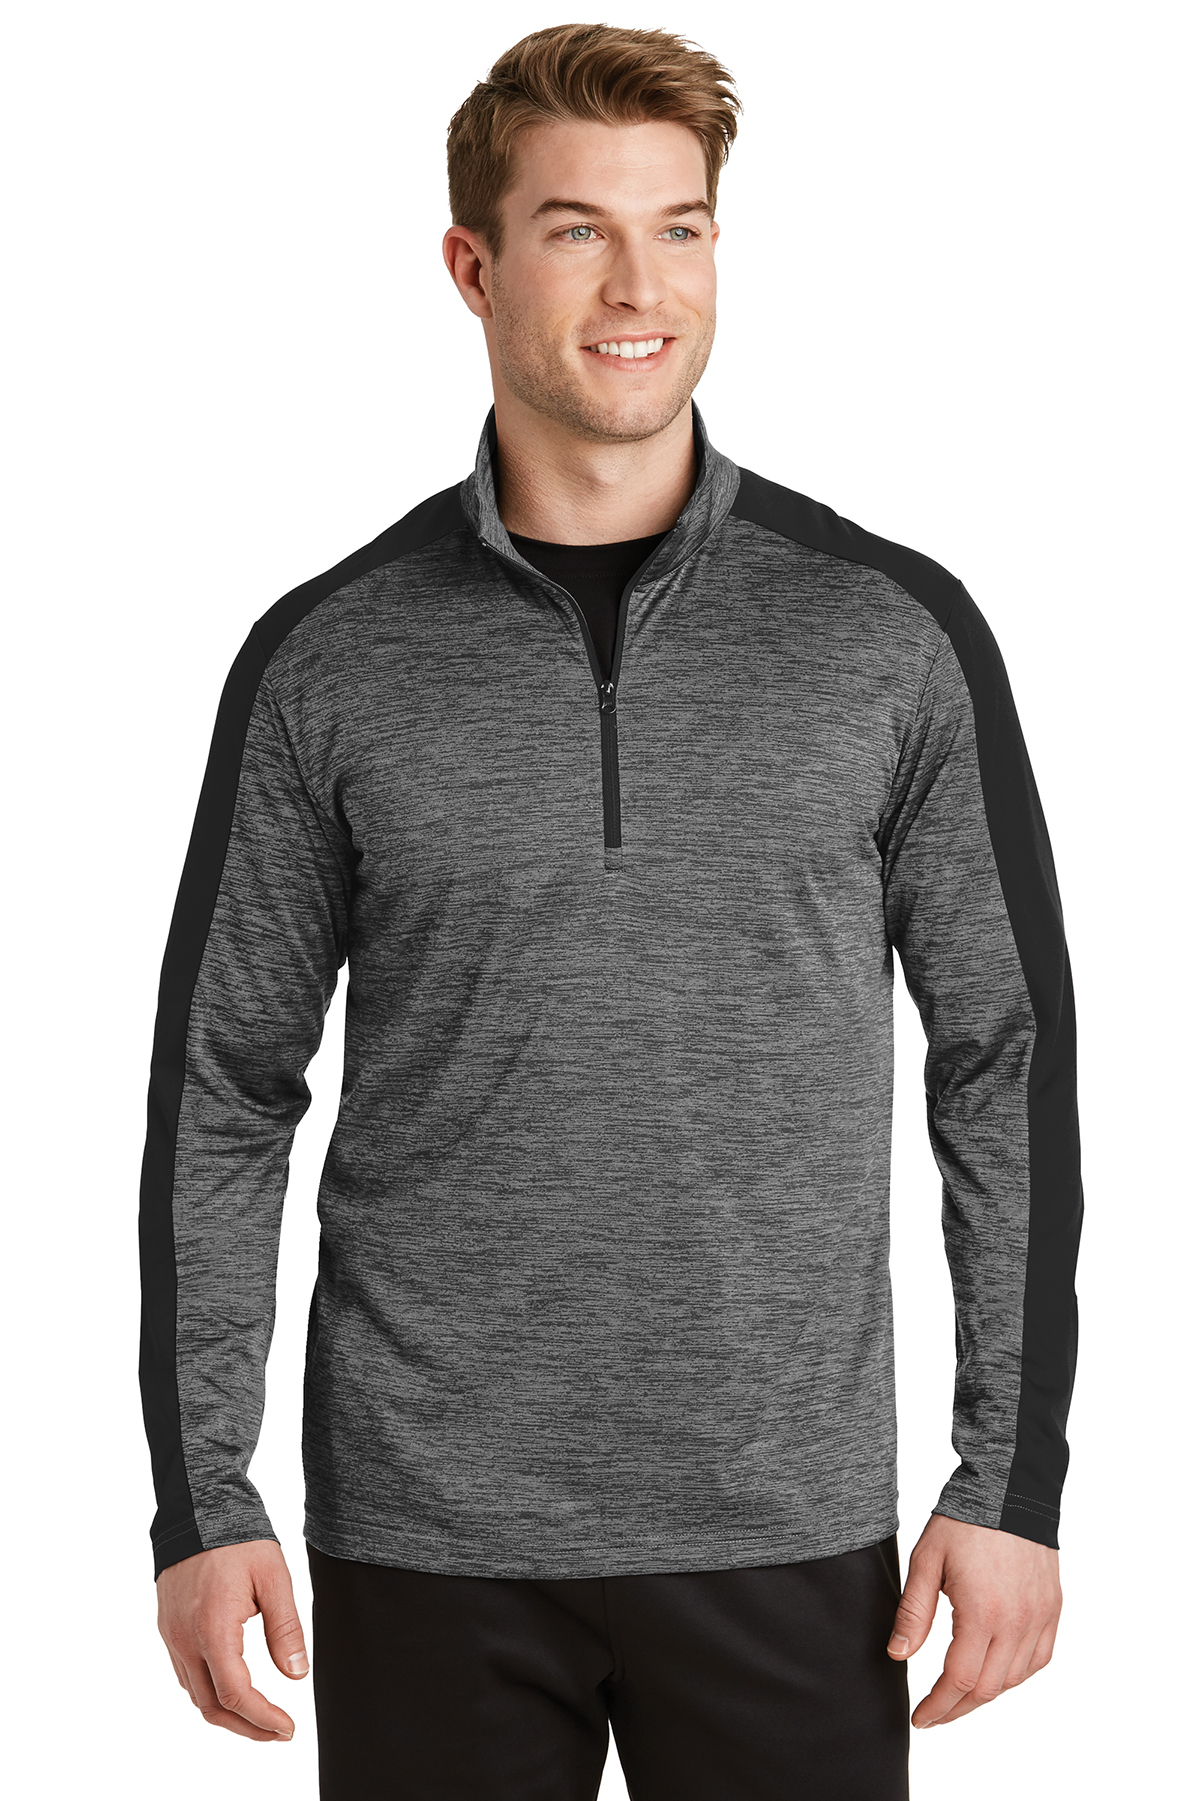 beb179ad679 Sport-Tek® PosiCharge® Electric Heather Colorblock 1 4-Zip Pullover ...